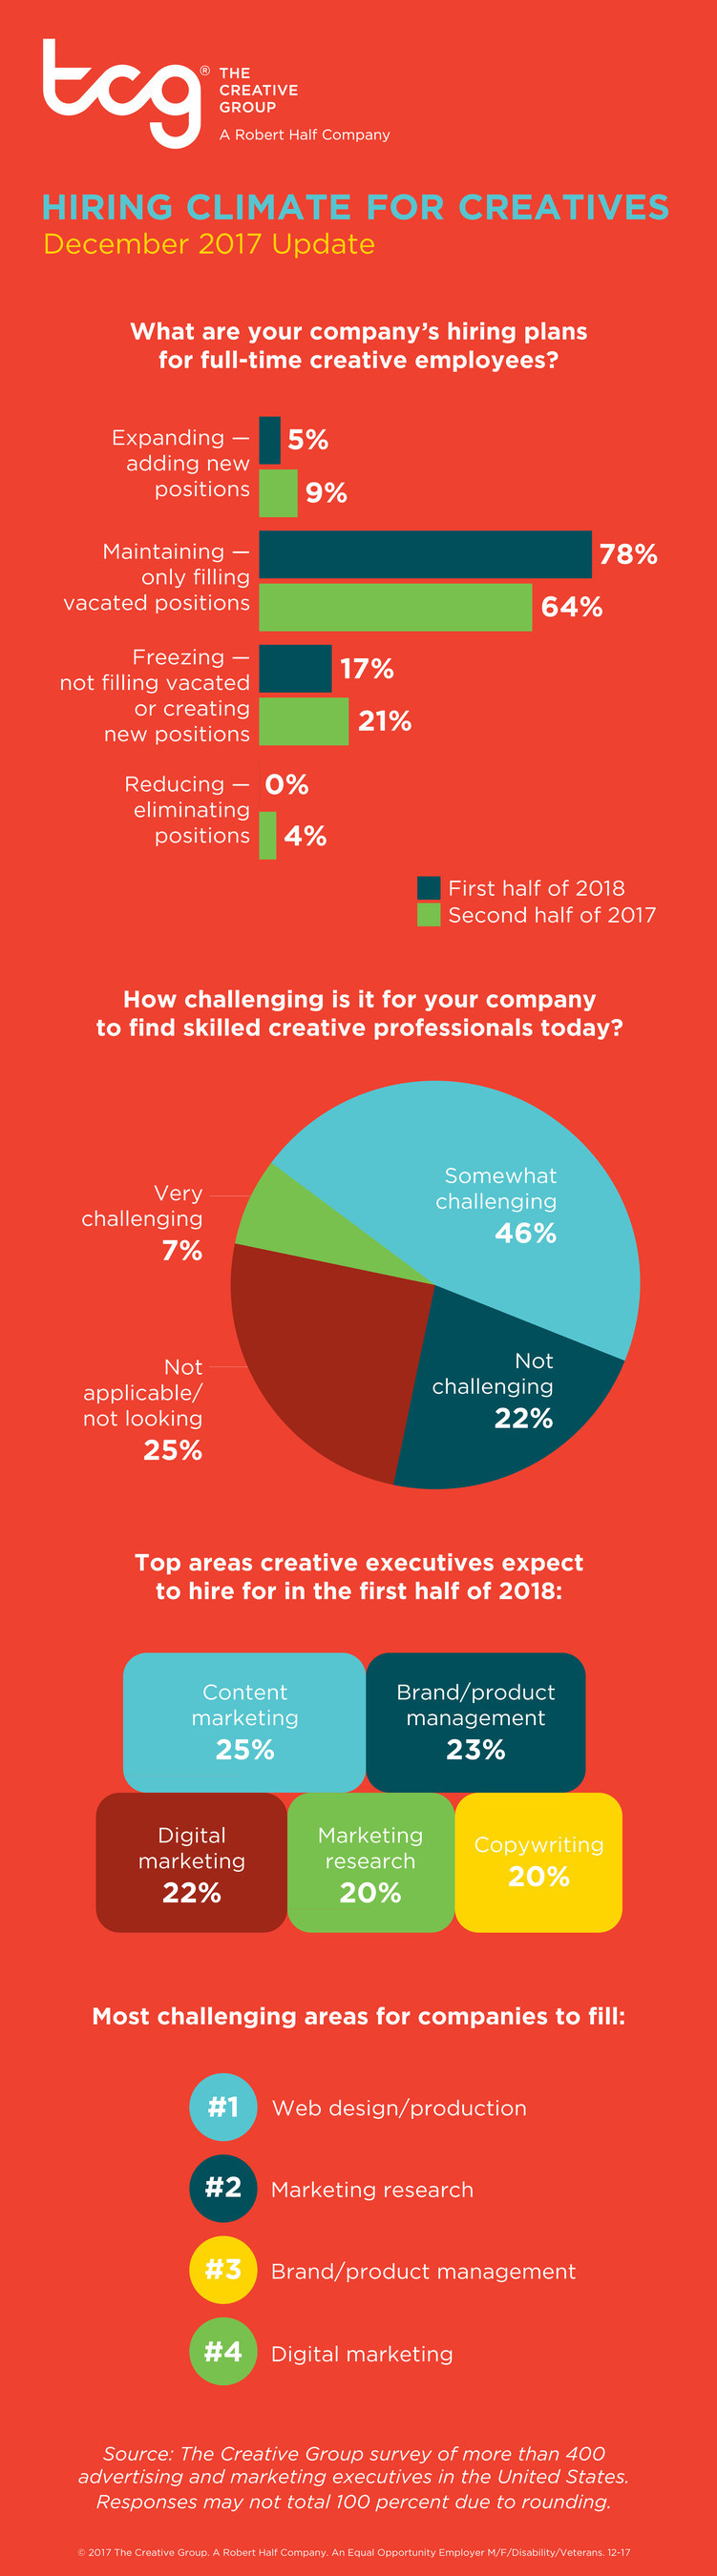 Research from The Creative Group reveals U.S. advertising and marketing executives' hiring plans for first half of 2018